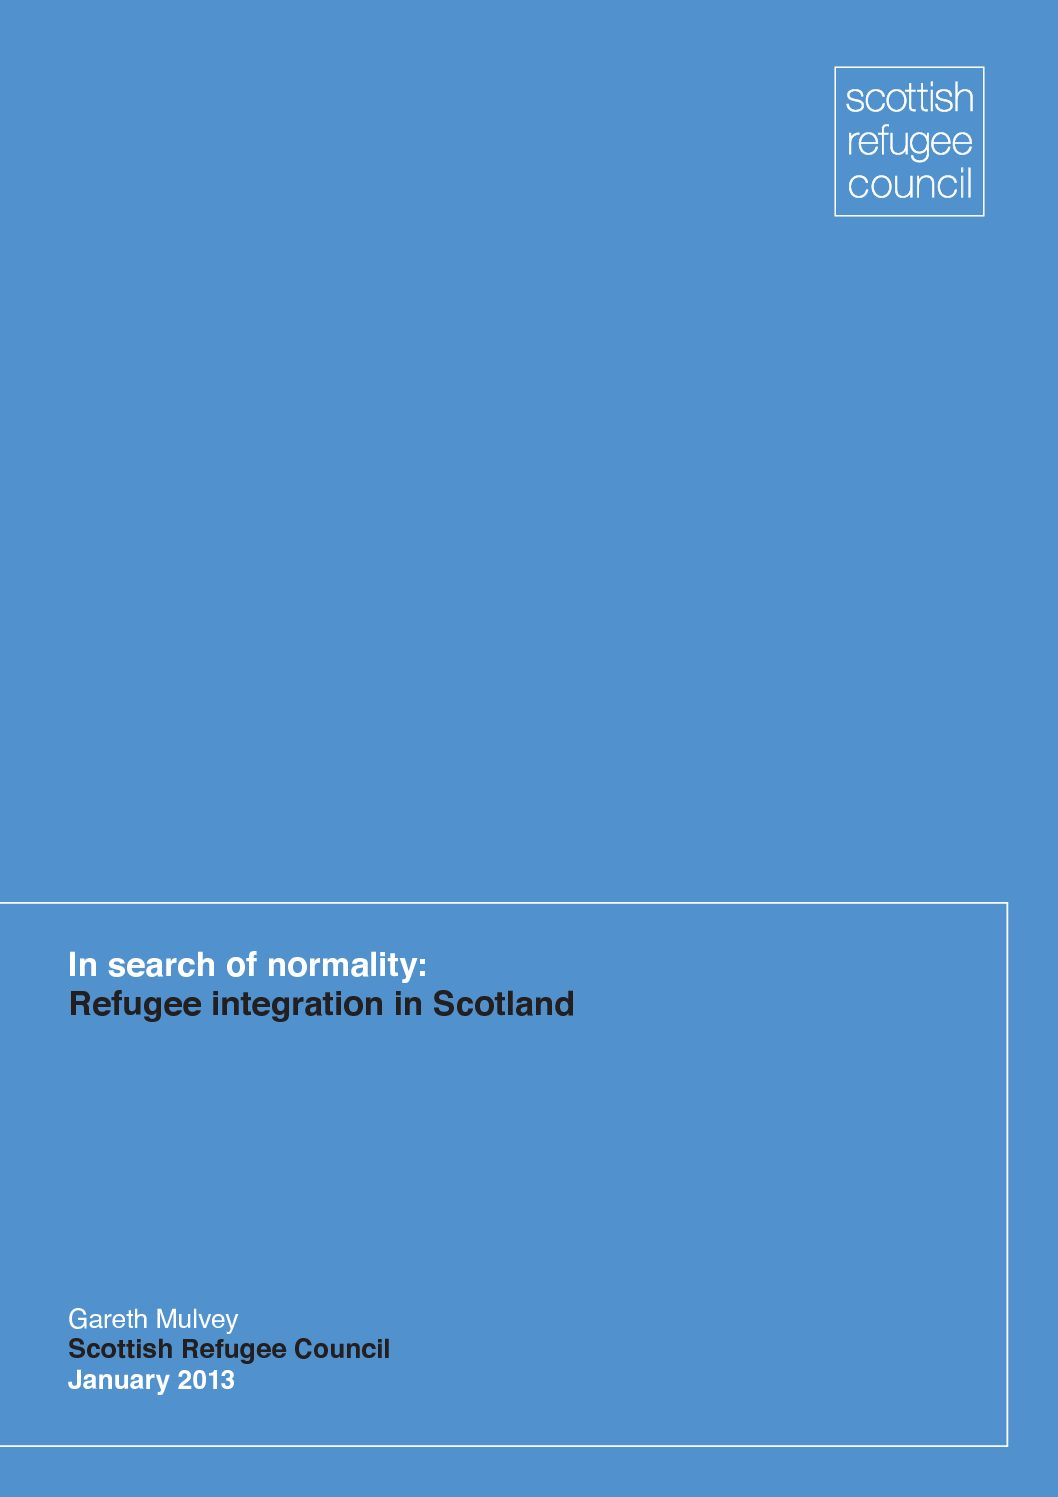 In-search-of-normality-Refugee-Integration-in-Scotland-PDF-pdf